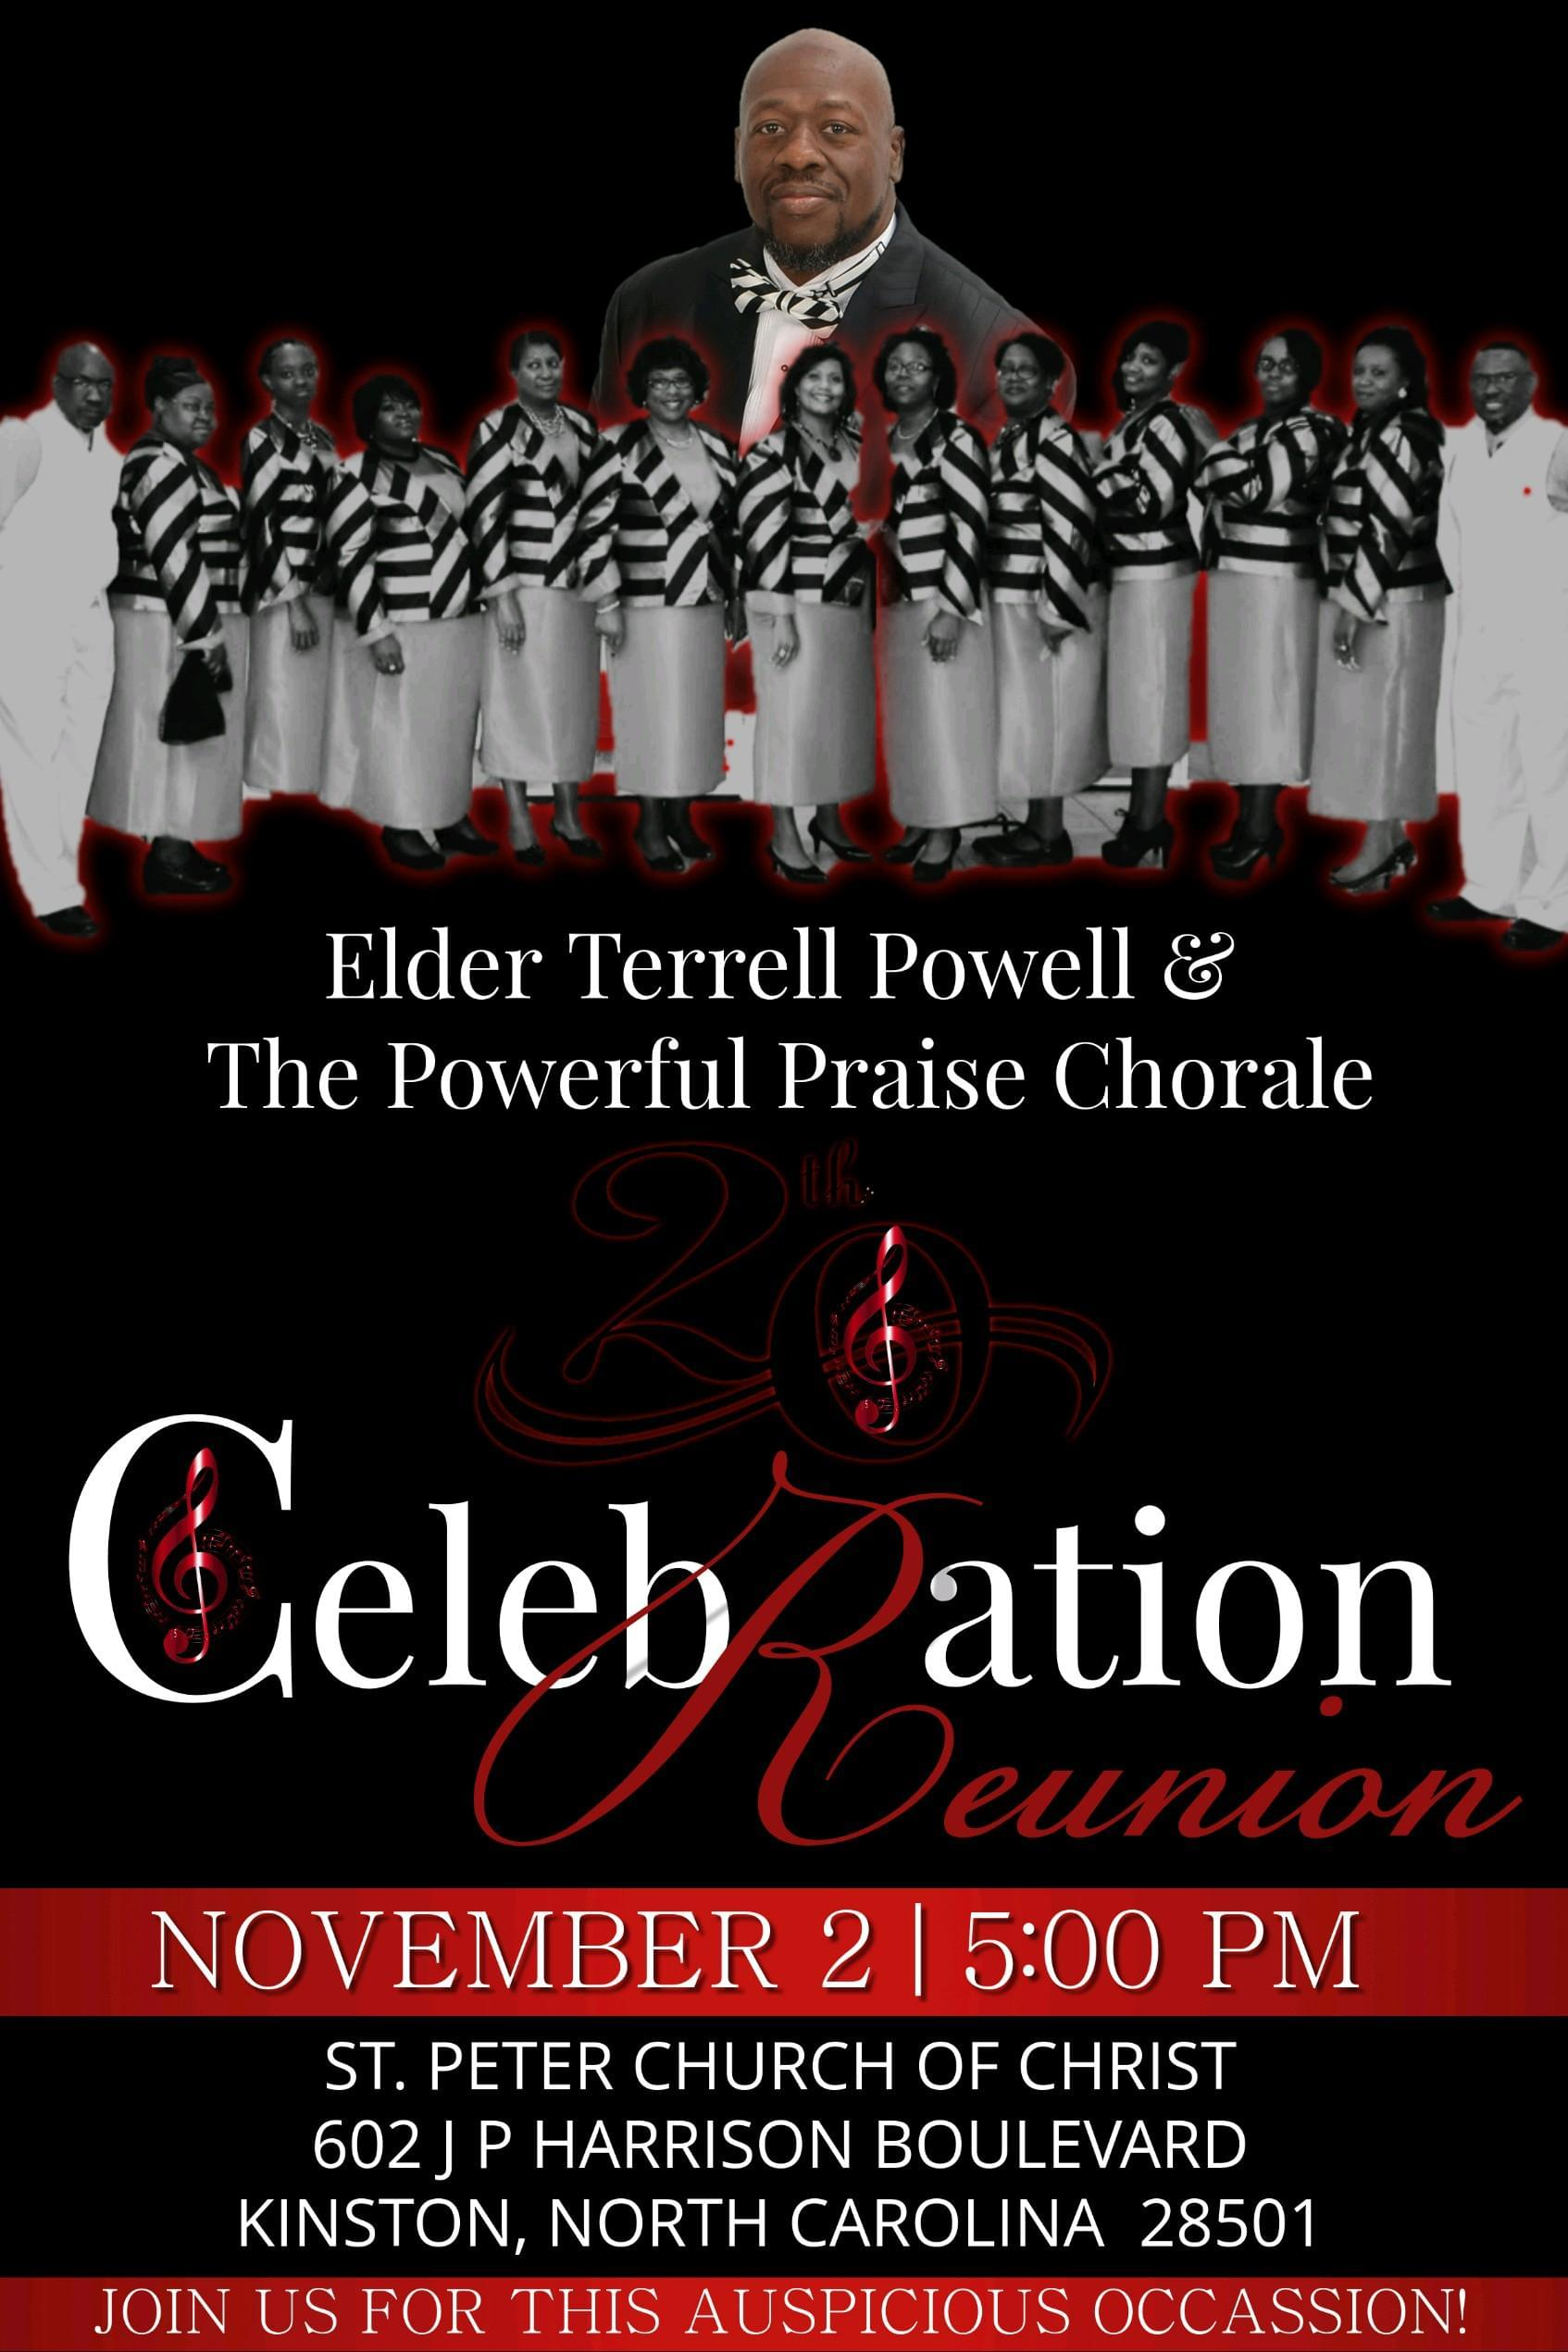 Elder Terrell Powell and the Powerful Praise  Chorale Celebration Reunion